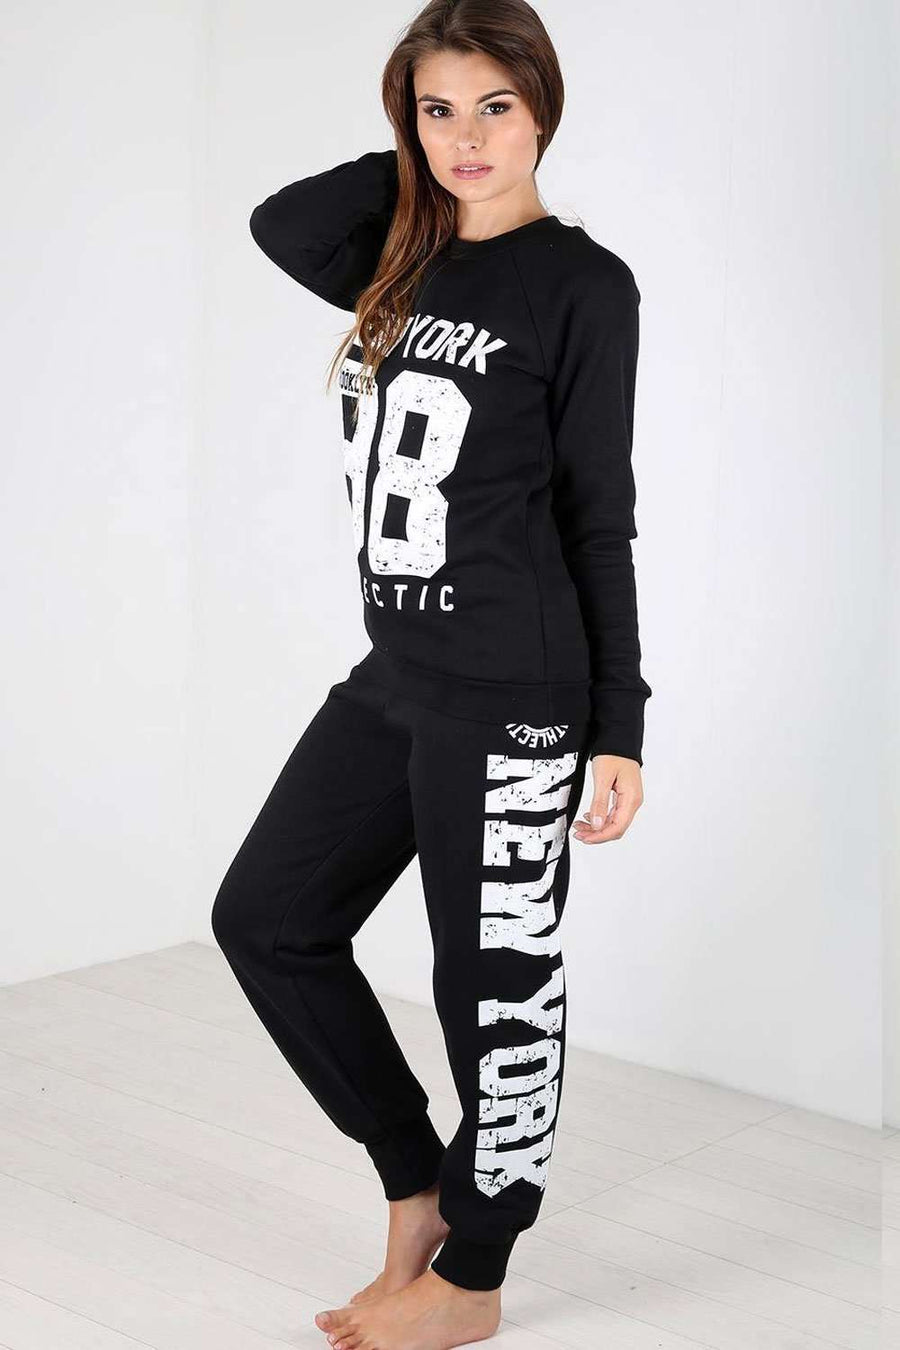 Larna New York Slogan Print Tracksuit Set - bejealous-com